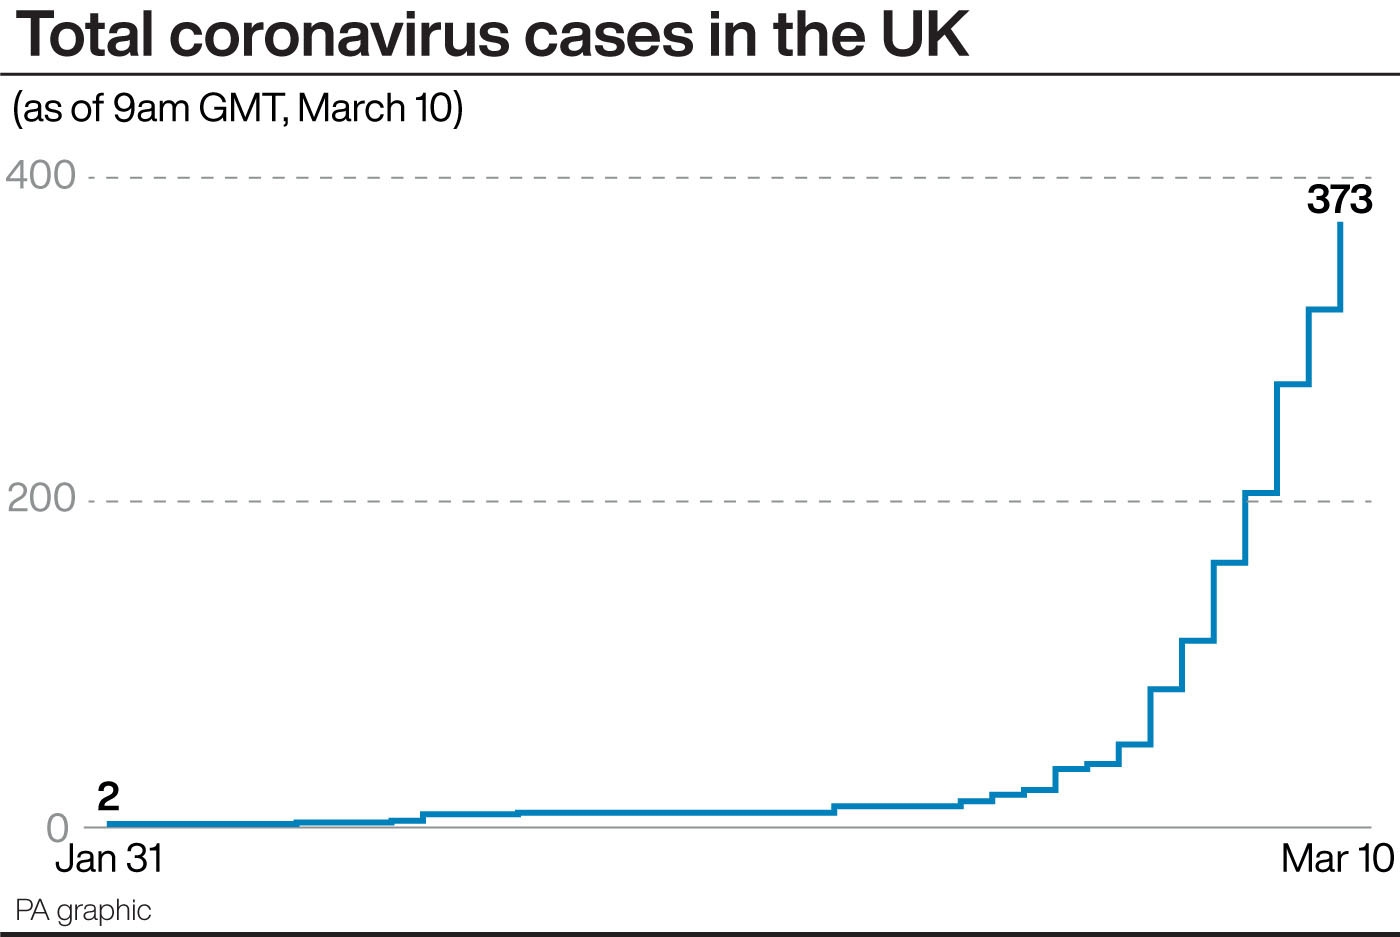 Coronavirus: Patient in 70s is fourth person to die